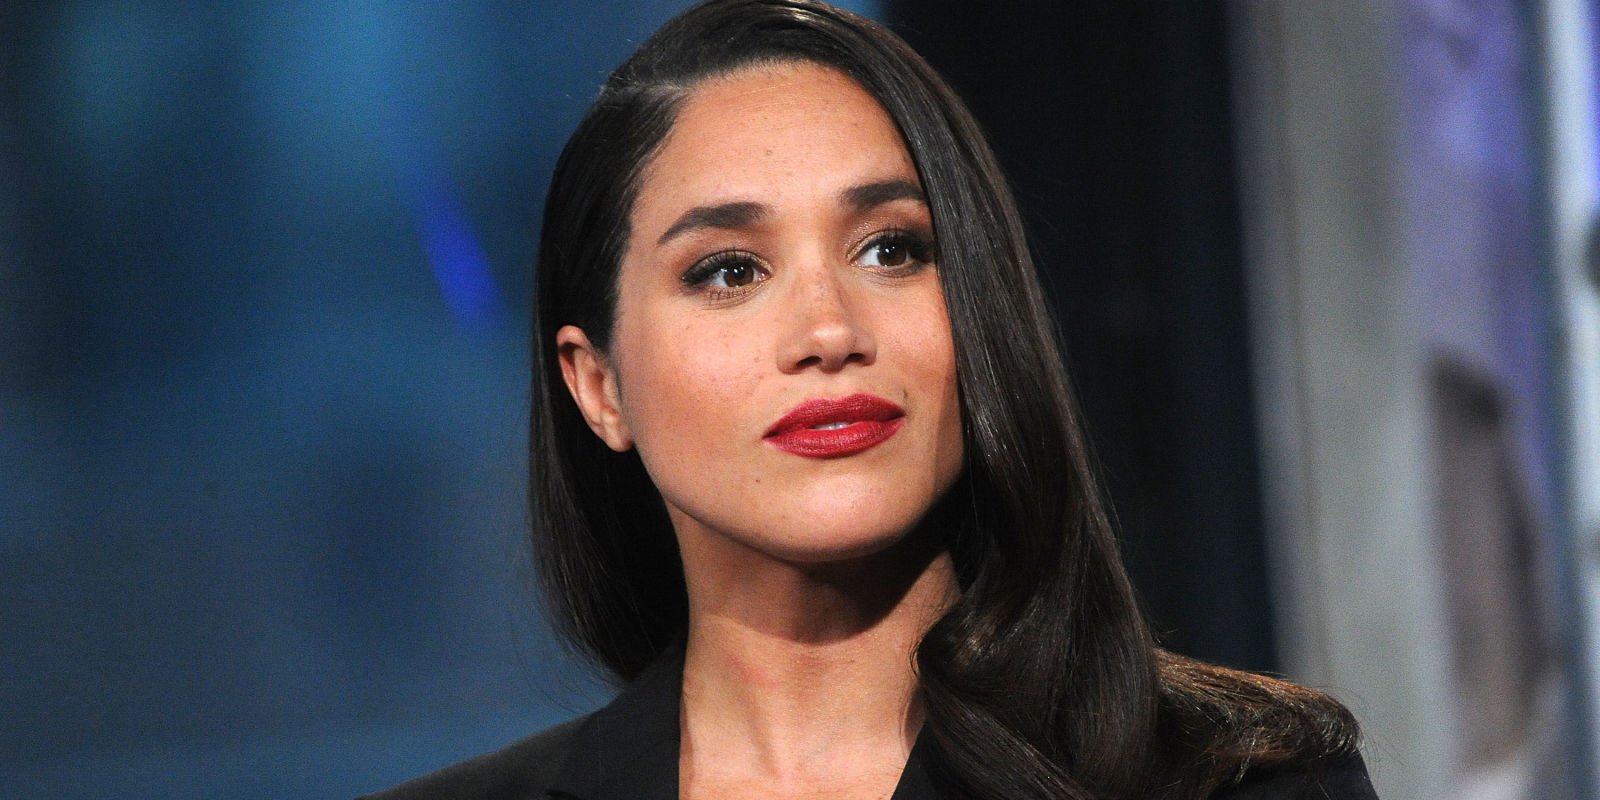 Meghan markle biography - Meghan Markle 17 Of Her Best Quotes For Inspiration